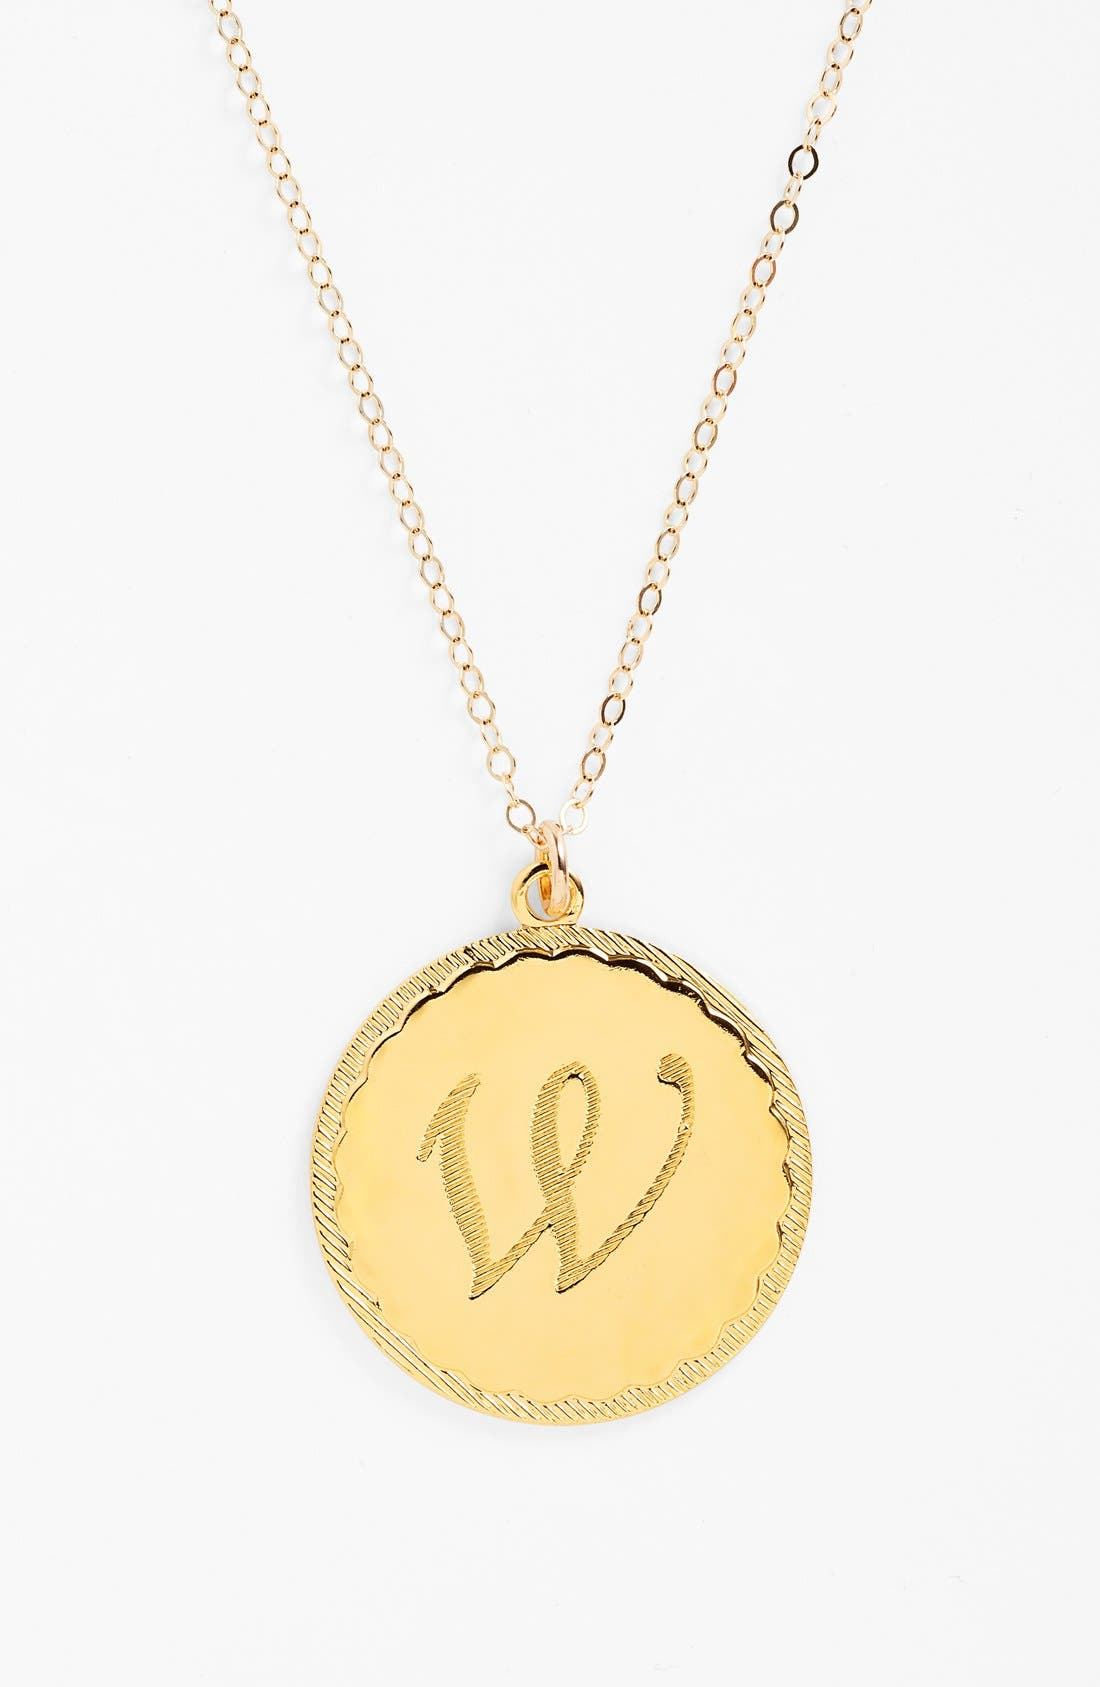 Alternate Image 1 Selected - Moon and Lola 'Dalton' Long Initial Pendant Necklace